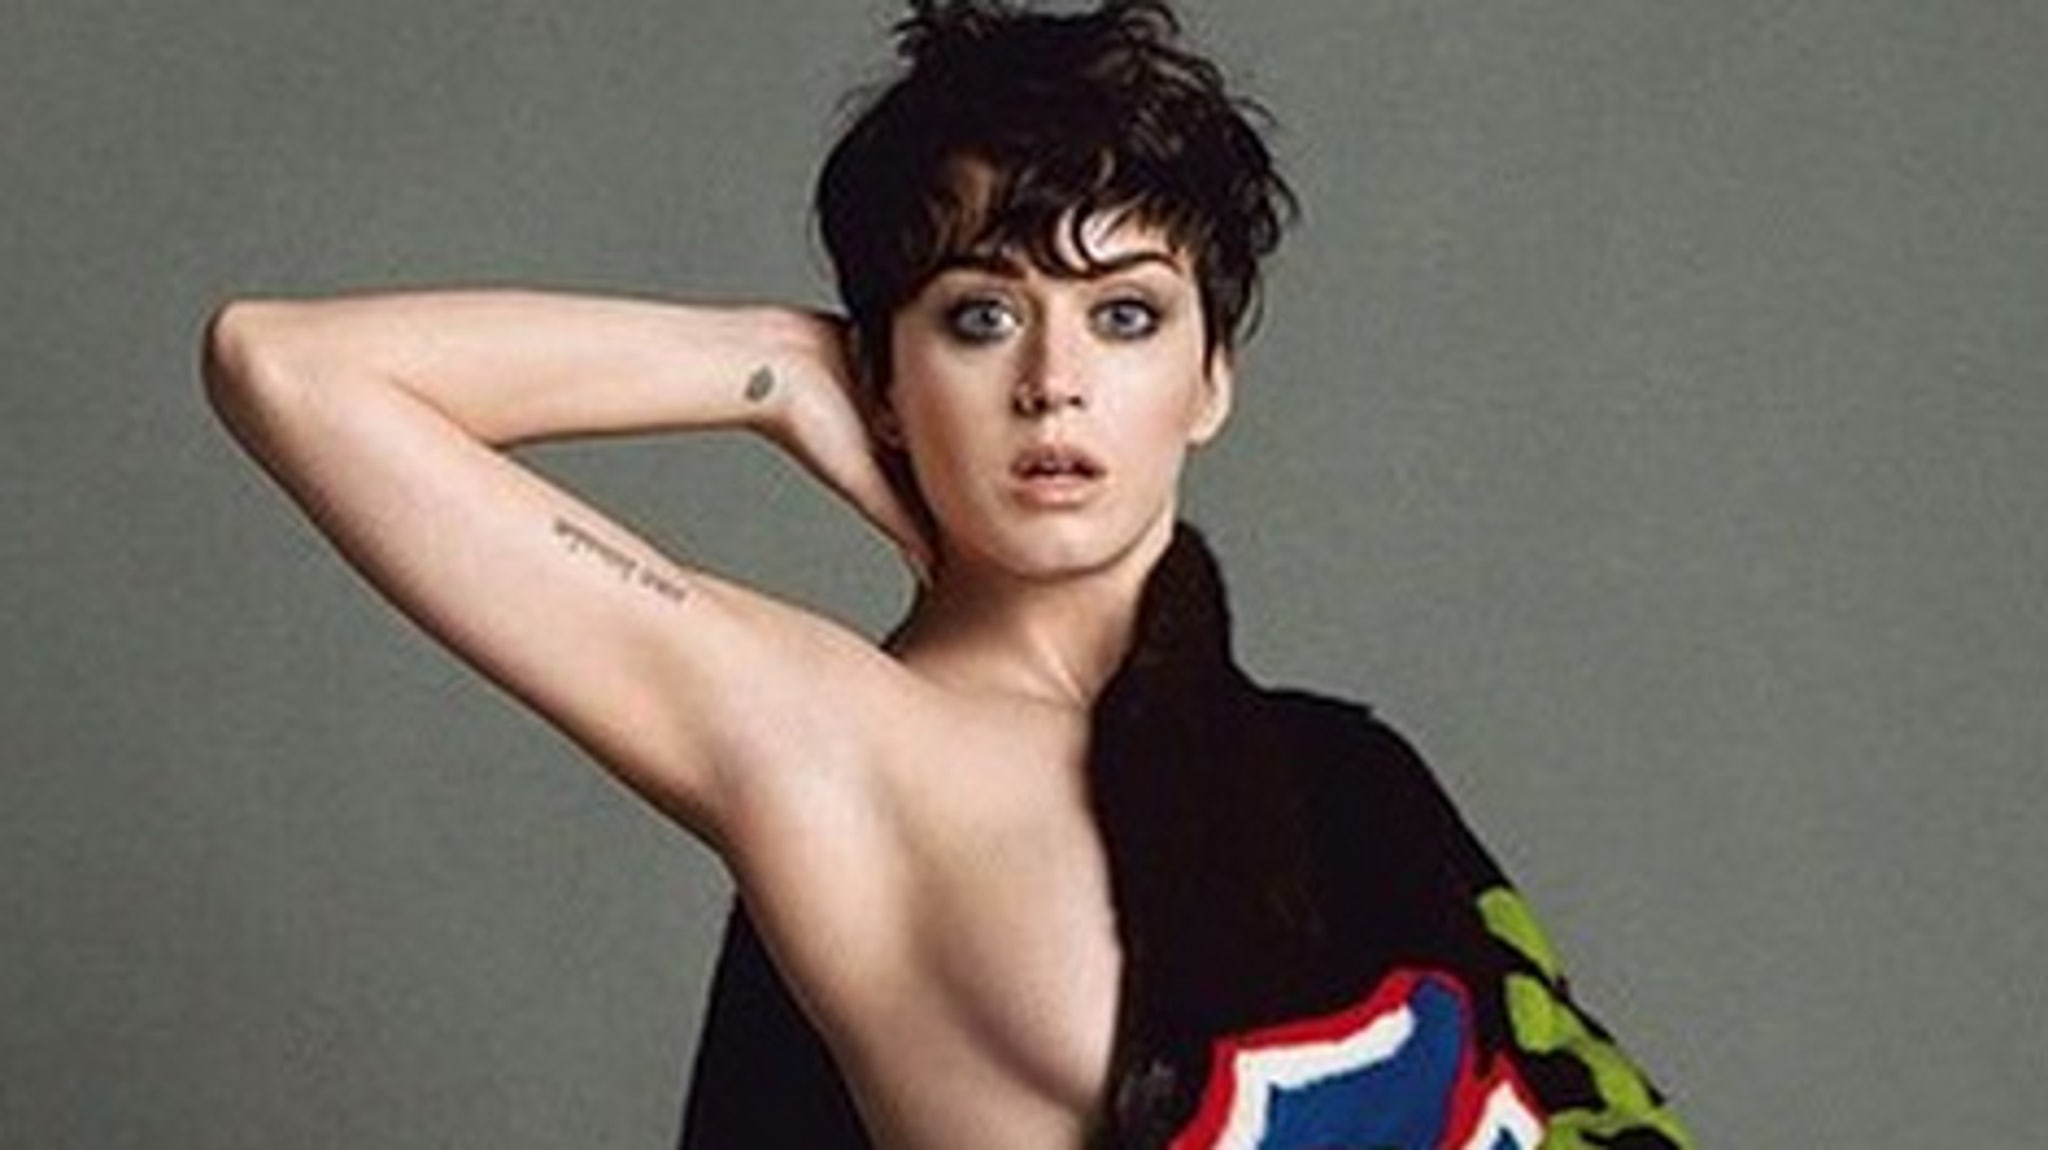 Katy Perry Goes Nude For Her New Music Video Daises